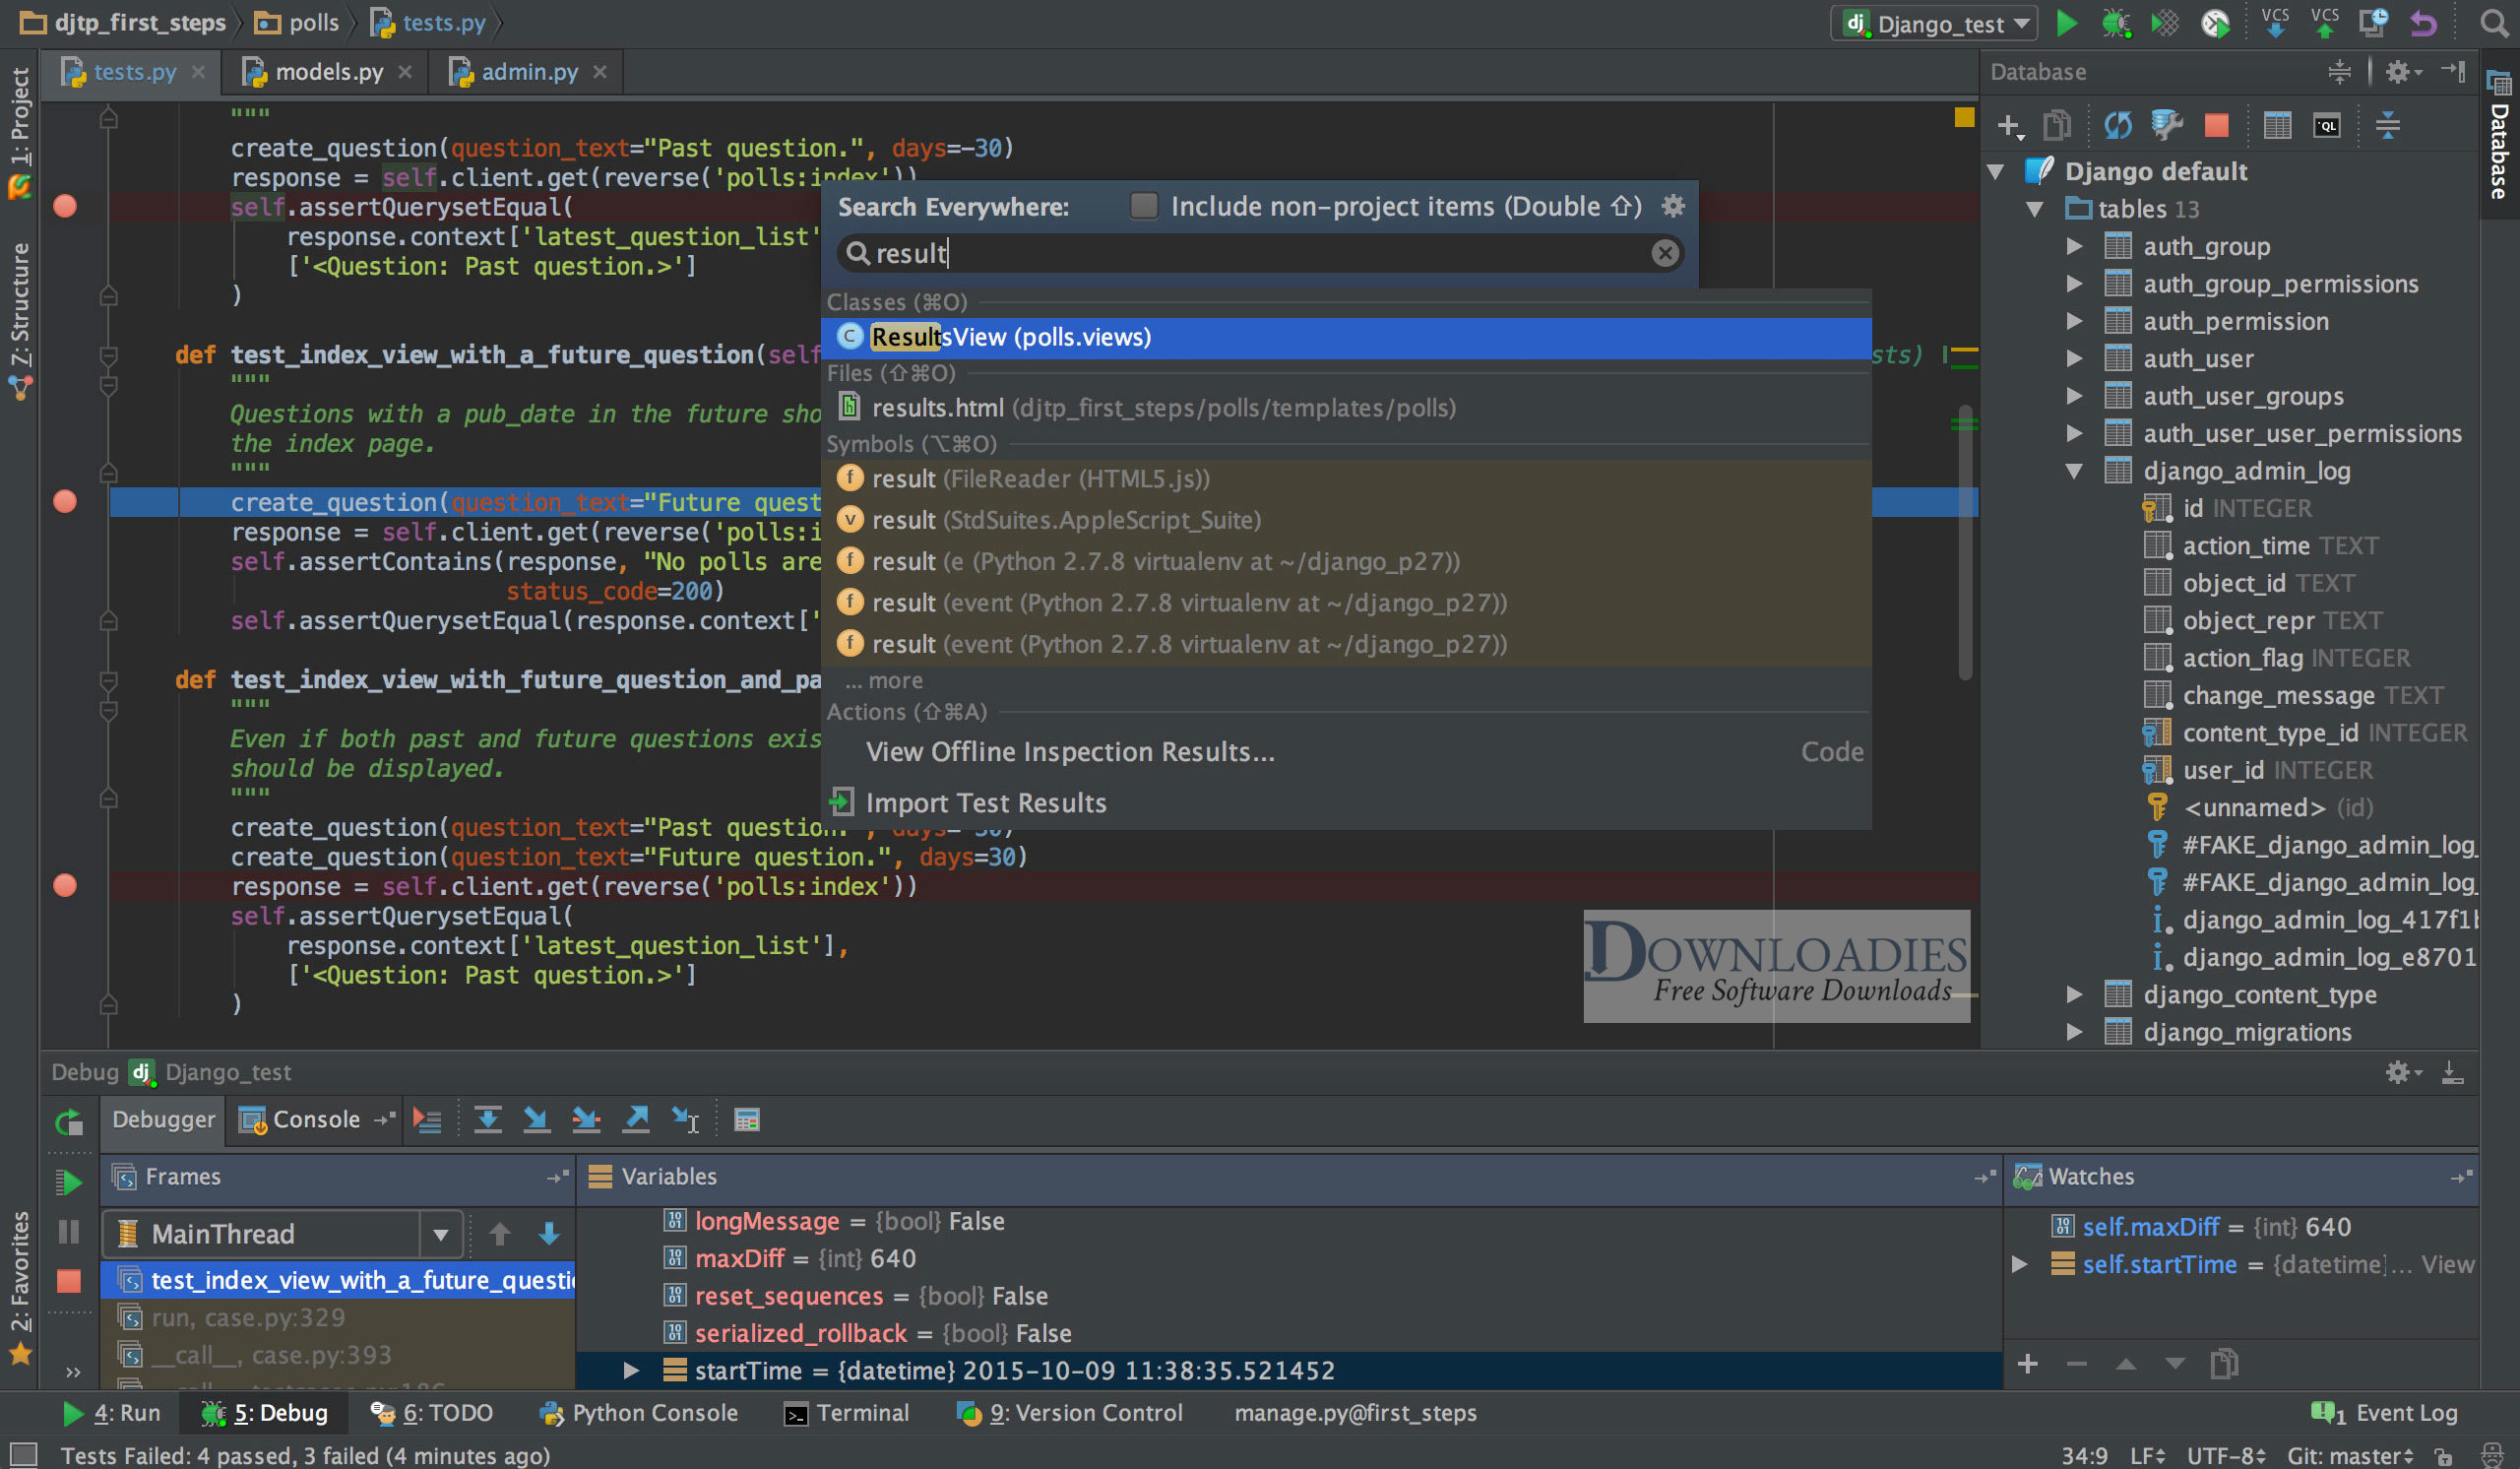 JetBrains PyCharm Professional 2019 for Mac Free Download